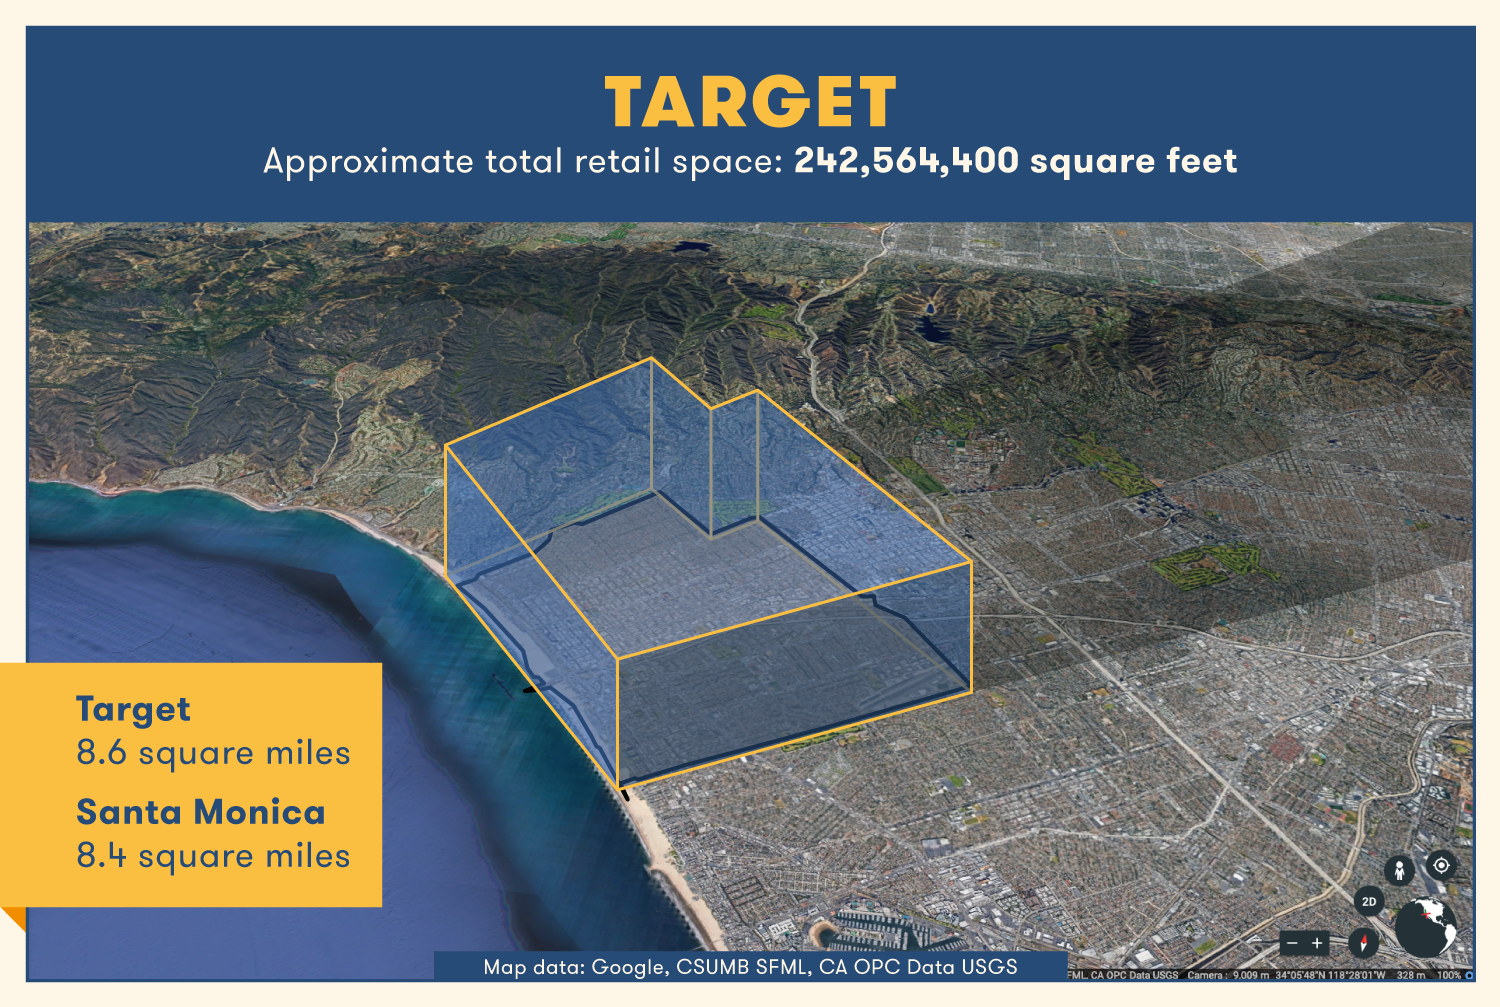 Target's total retail space would be 8.6 square miles — roughly the size of Santa Monica.